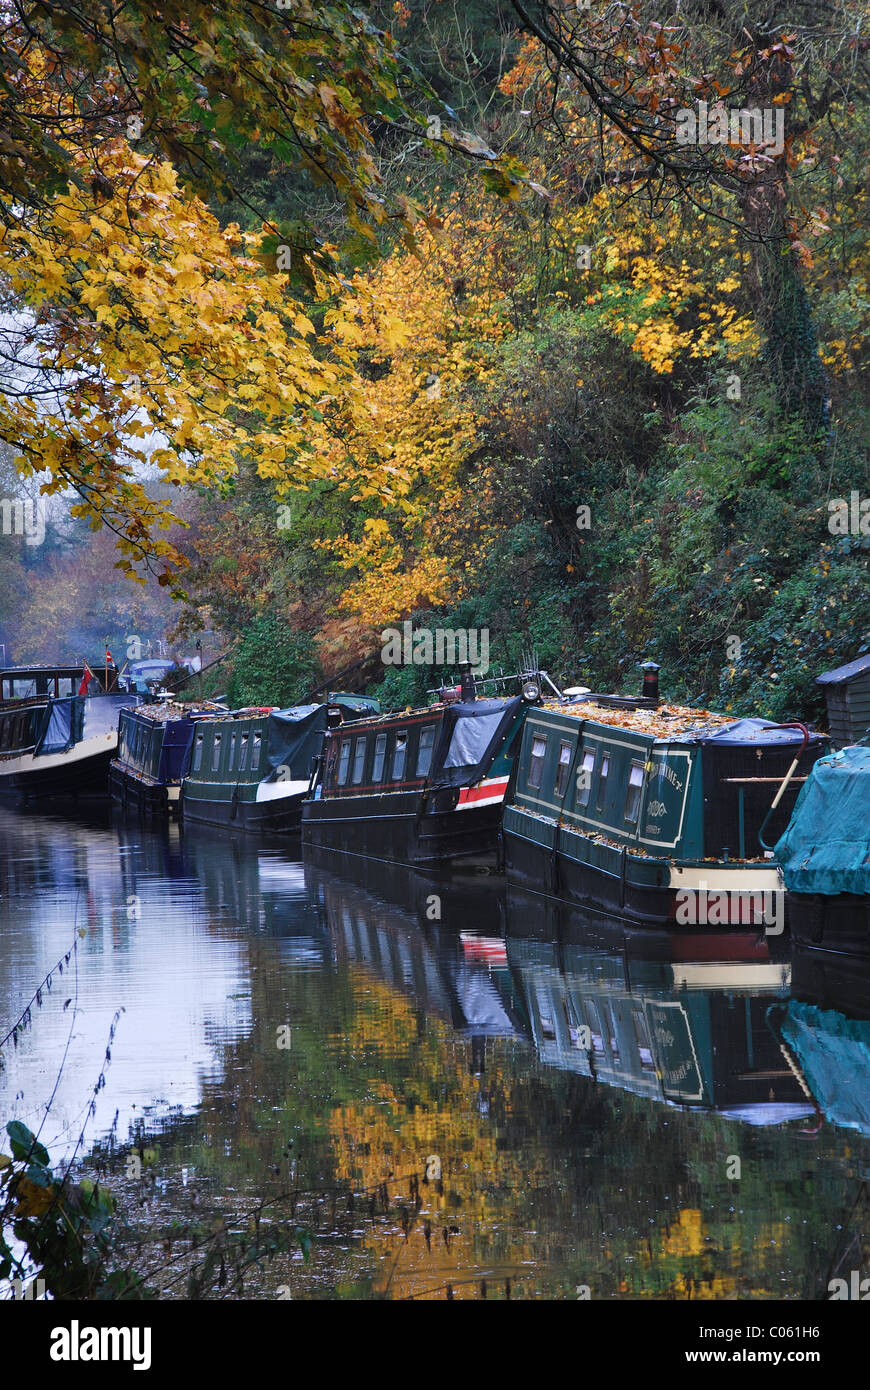 Narrow boats at Pewsey Wharf moored amidst the Autumn colour  Wiltshire, UK November 2011 - Stock Image